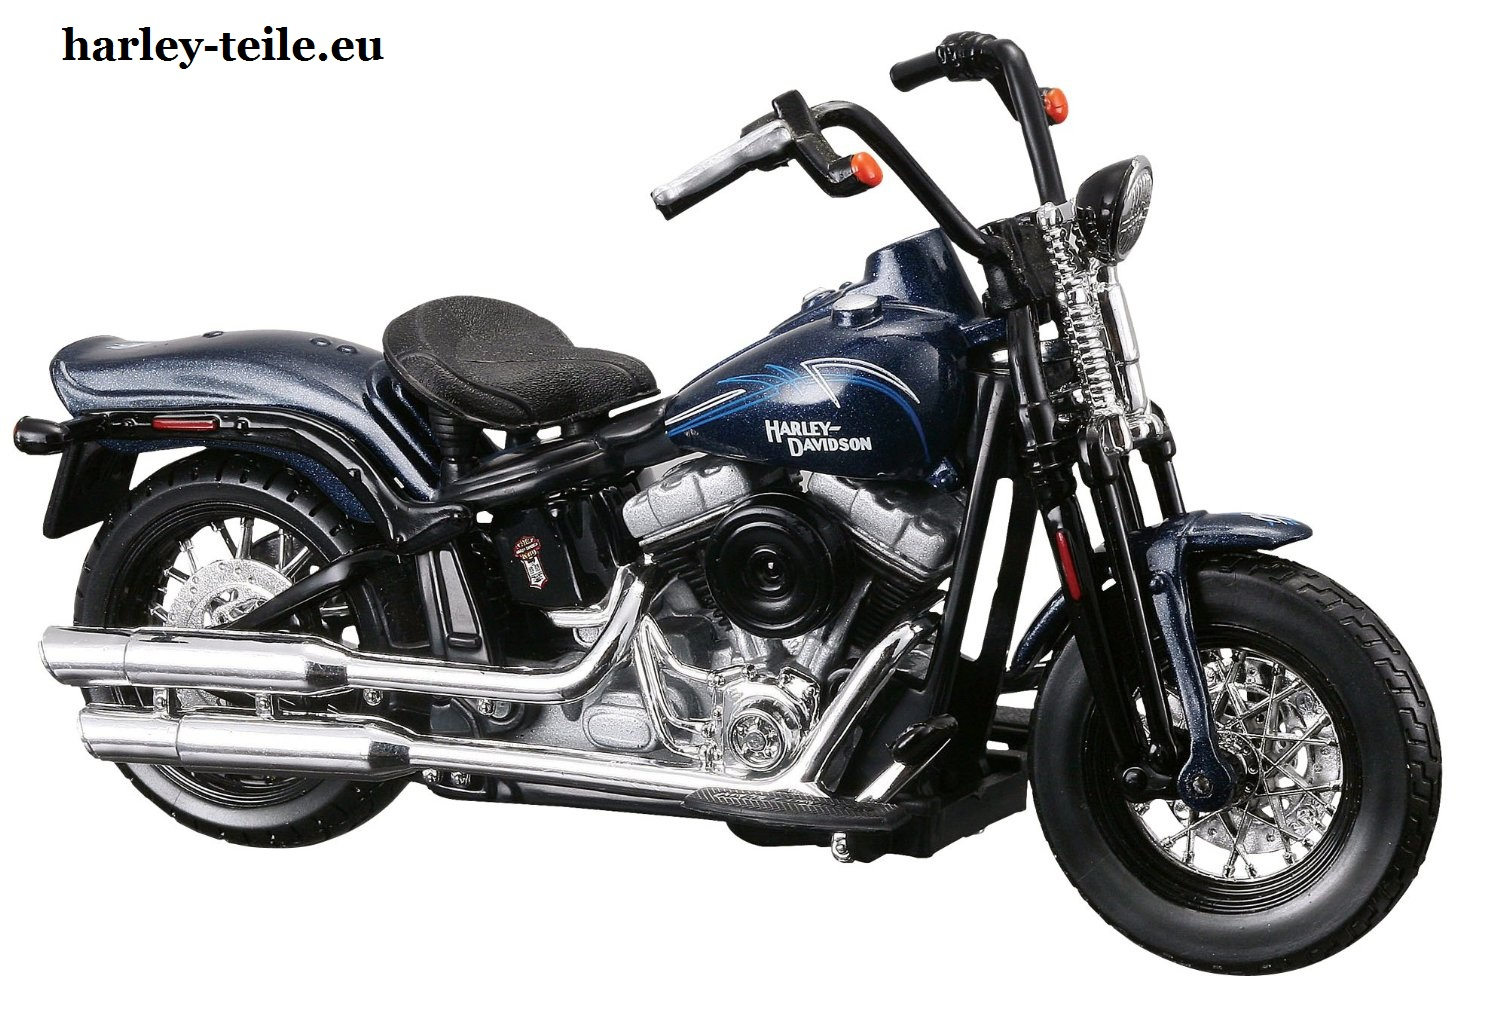 harley davidson 2008 flstb cross bones 1 18 maisto. Black Bedroom Furniture Sets. Home Design Ideas